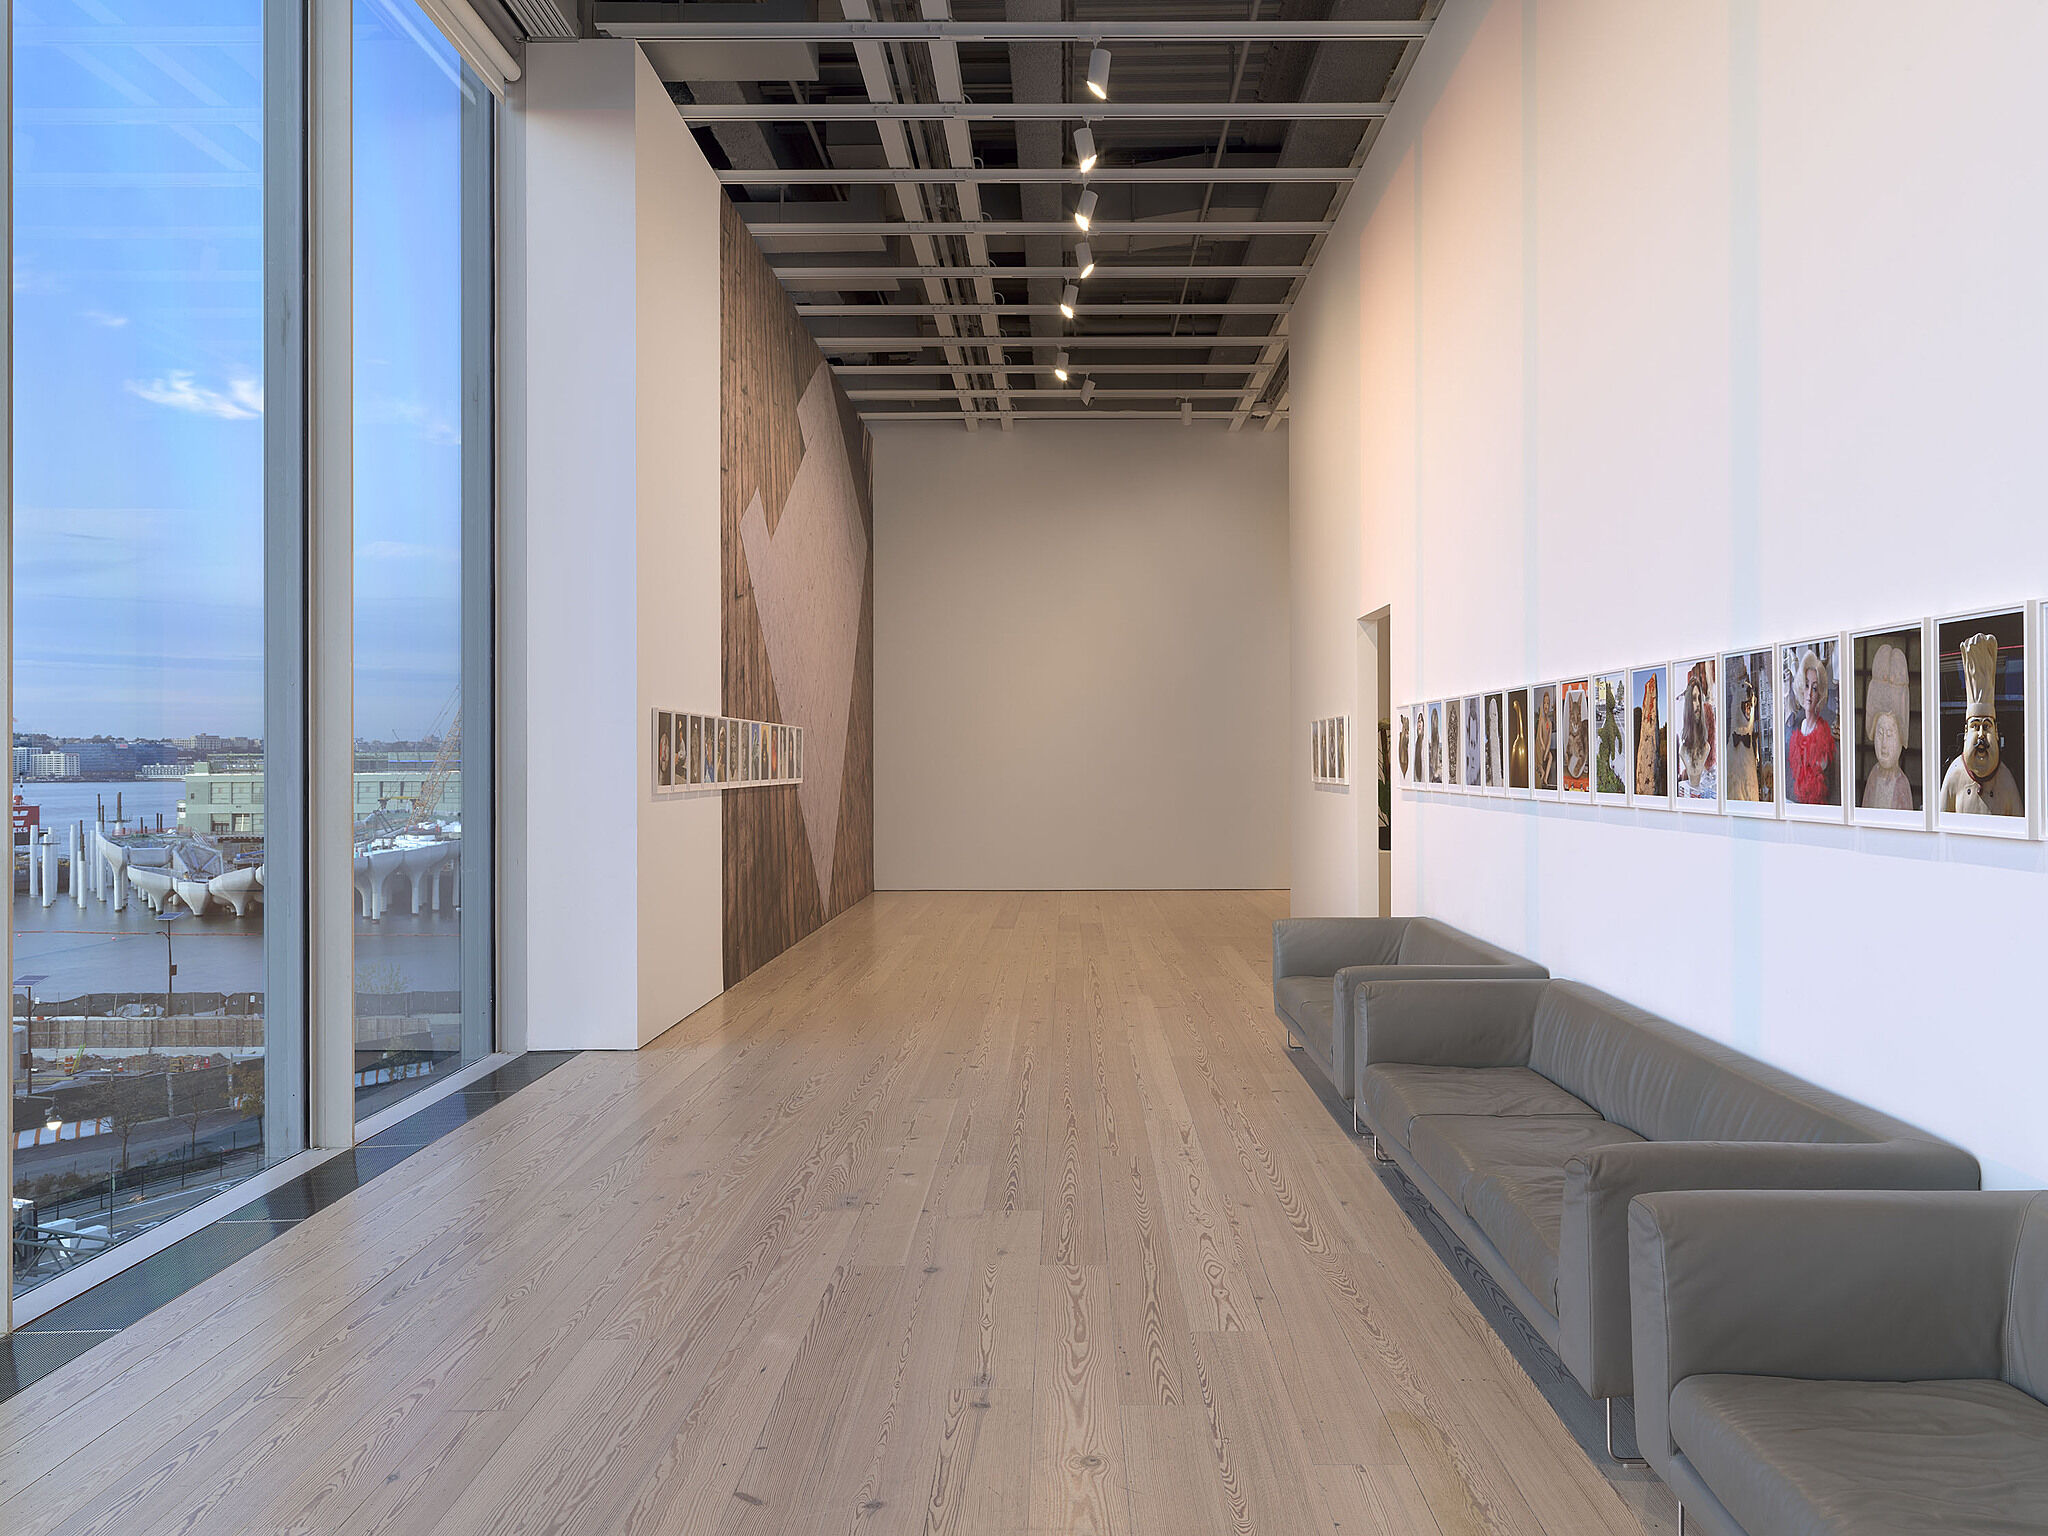 The Whitney gallery facing the river with a line of artworks on the wall.